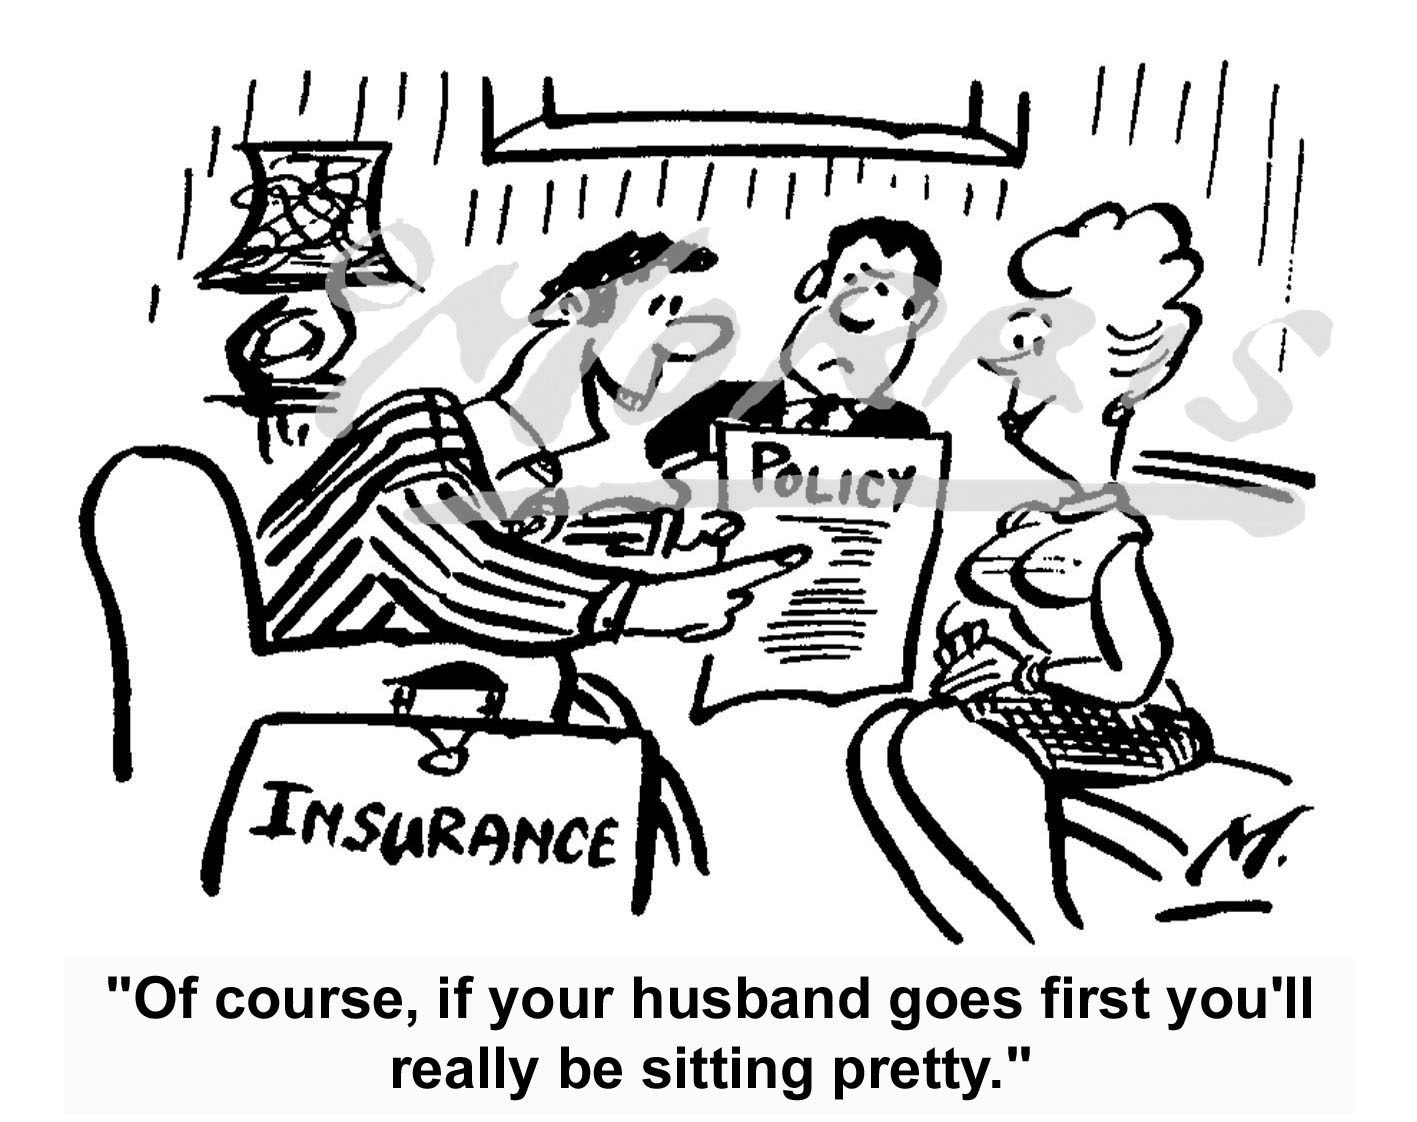 Insurance endowment policy cartoon Ref: 0324bw